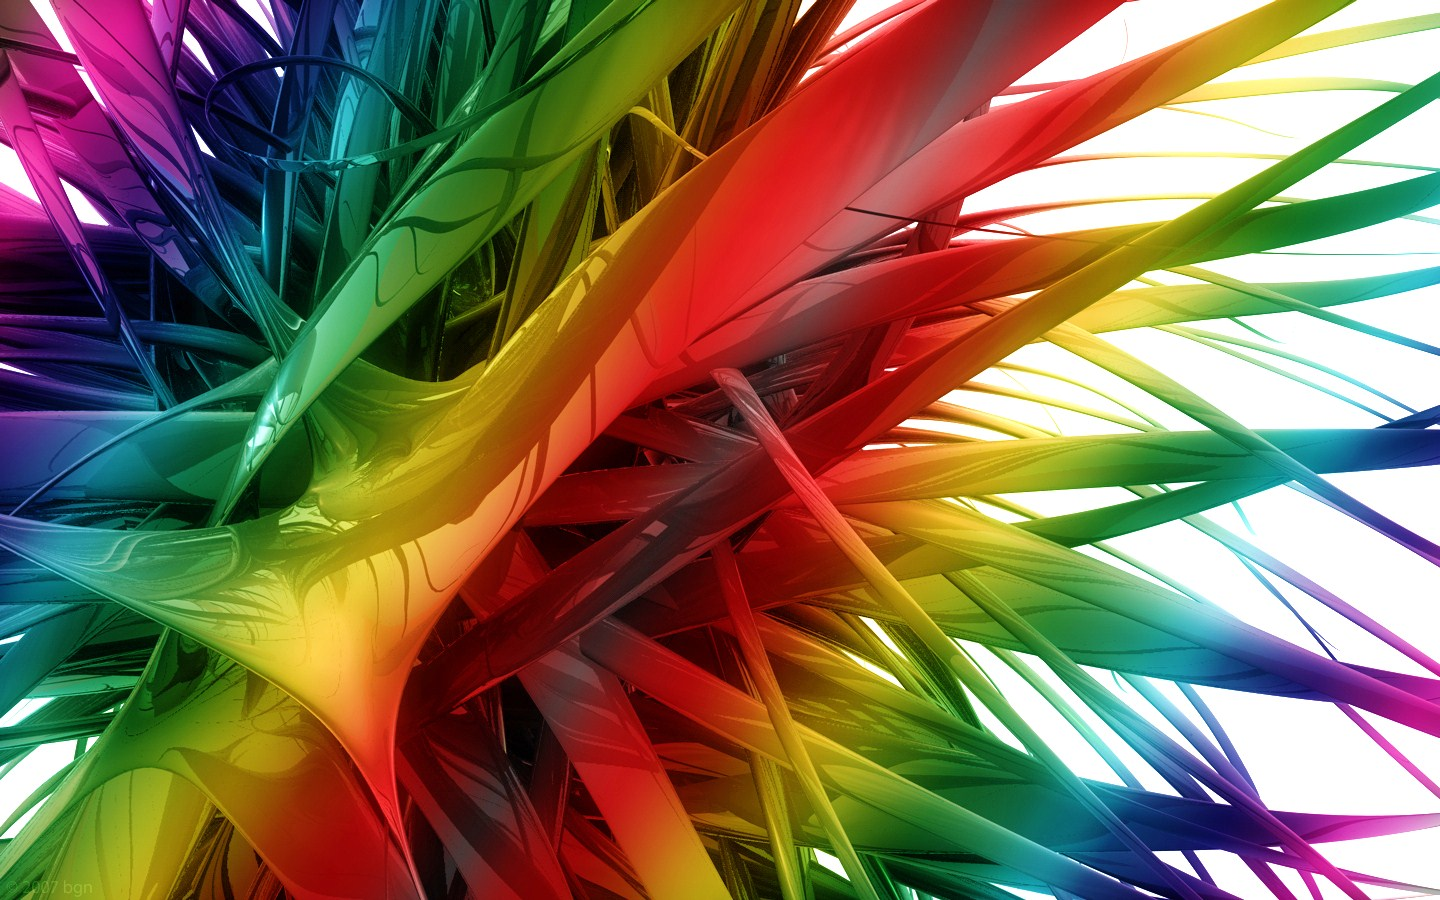 abstract art backgrounds - photo #45